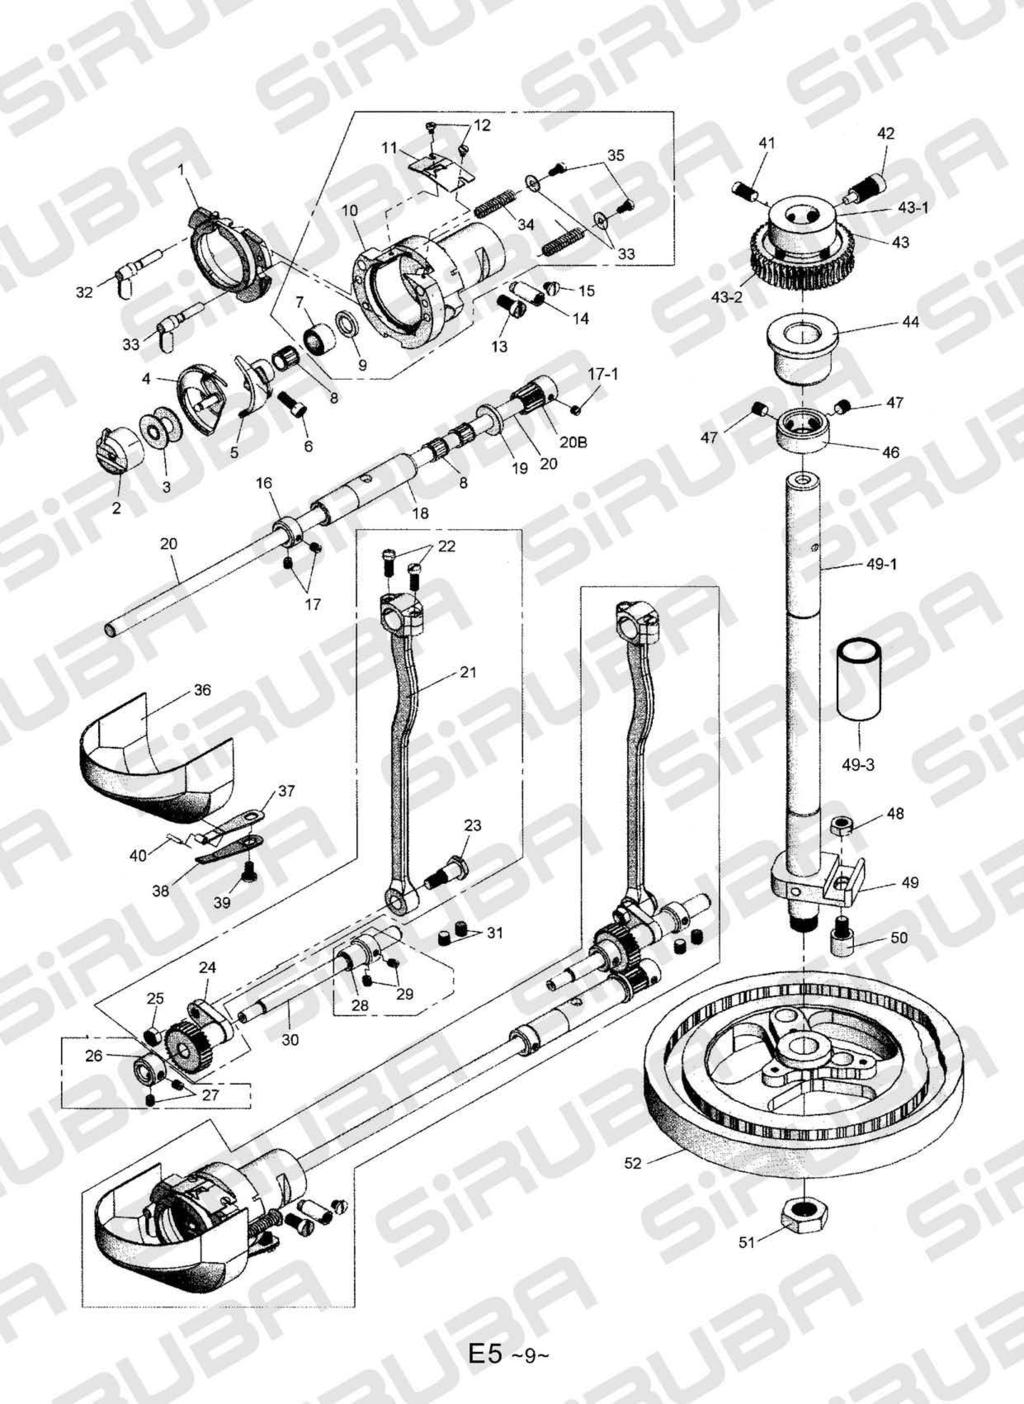 Pk522 Ffmajjw Flll Instruction And Parts List From The Library Fdt Holder Motor Universal 4 42 E5